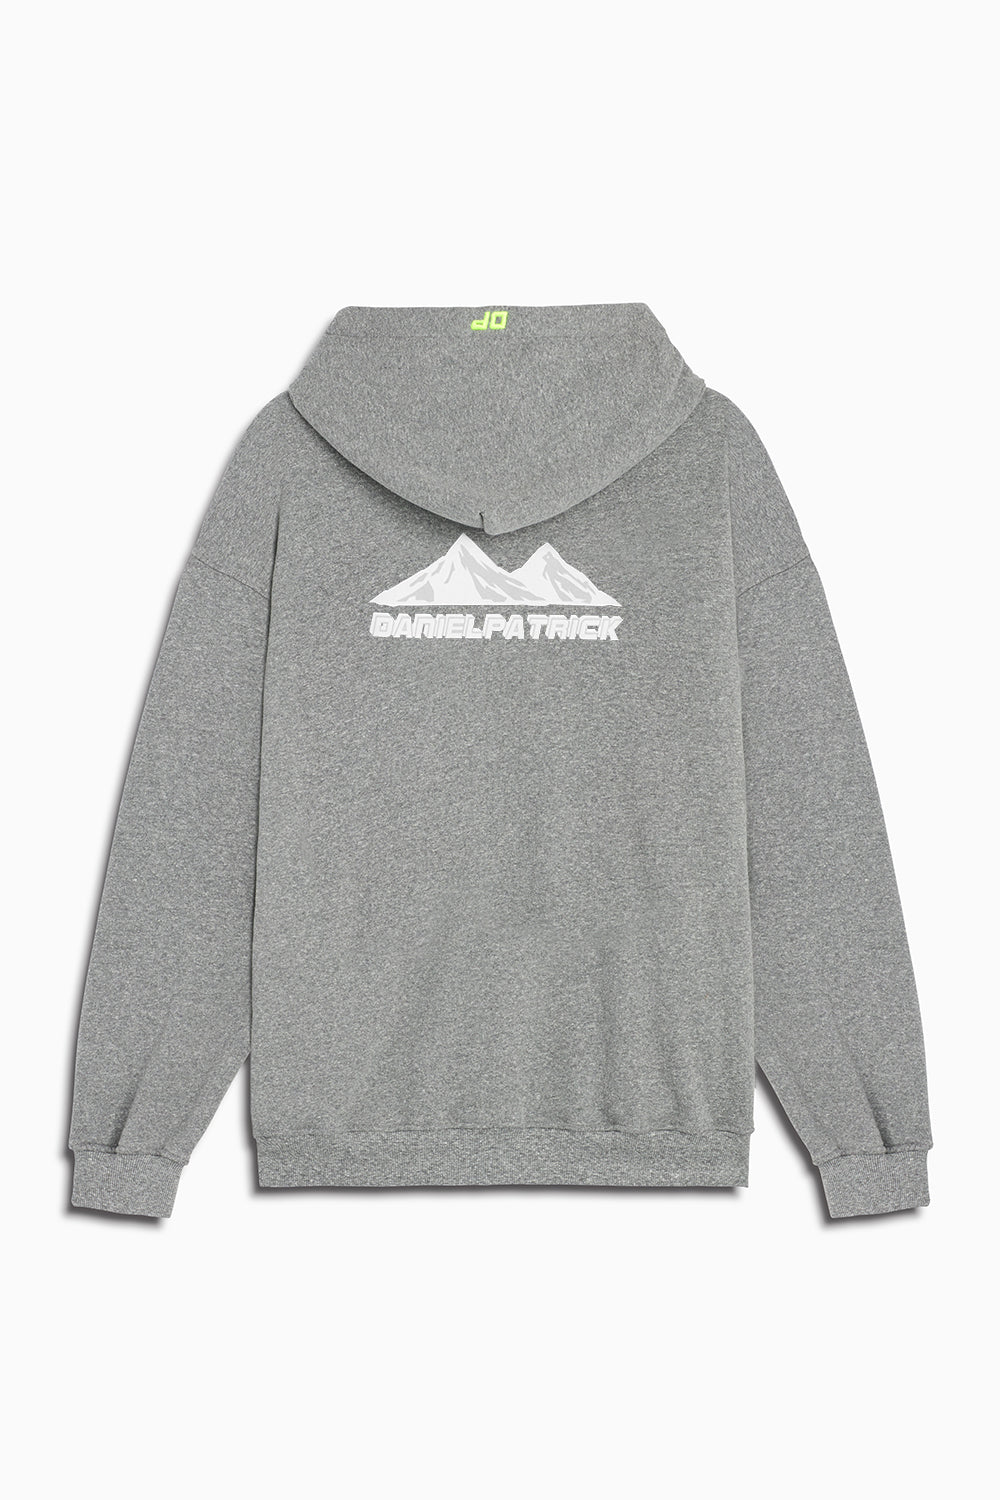 moving mountains hoodie in heather grey by daniel patrick